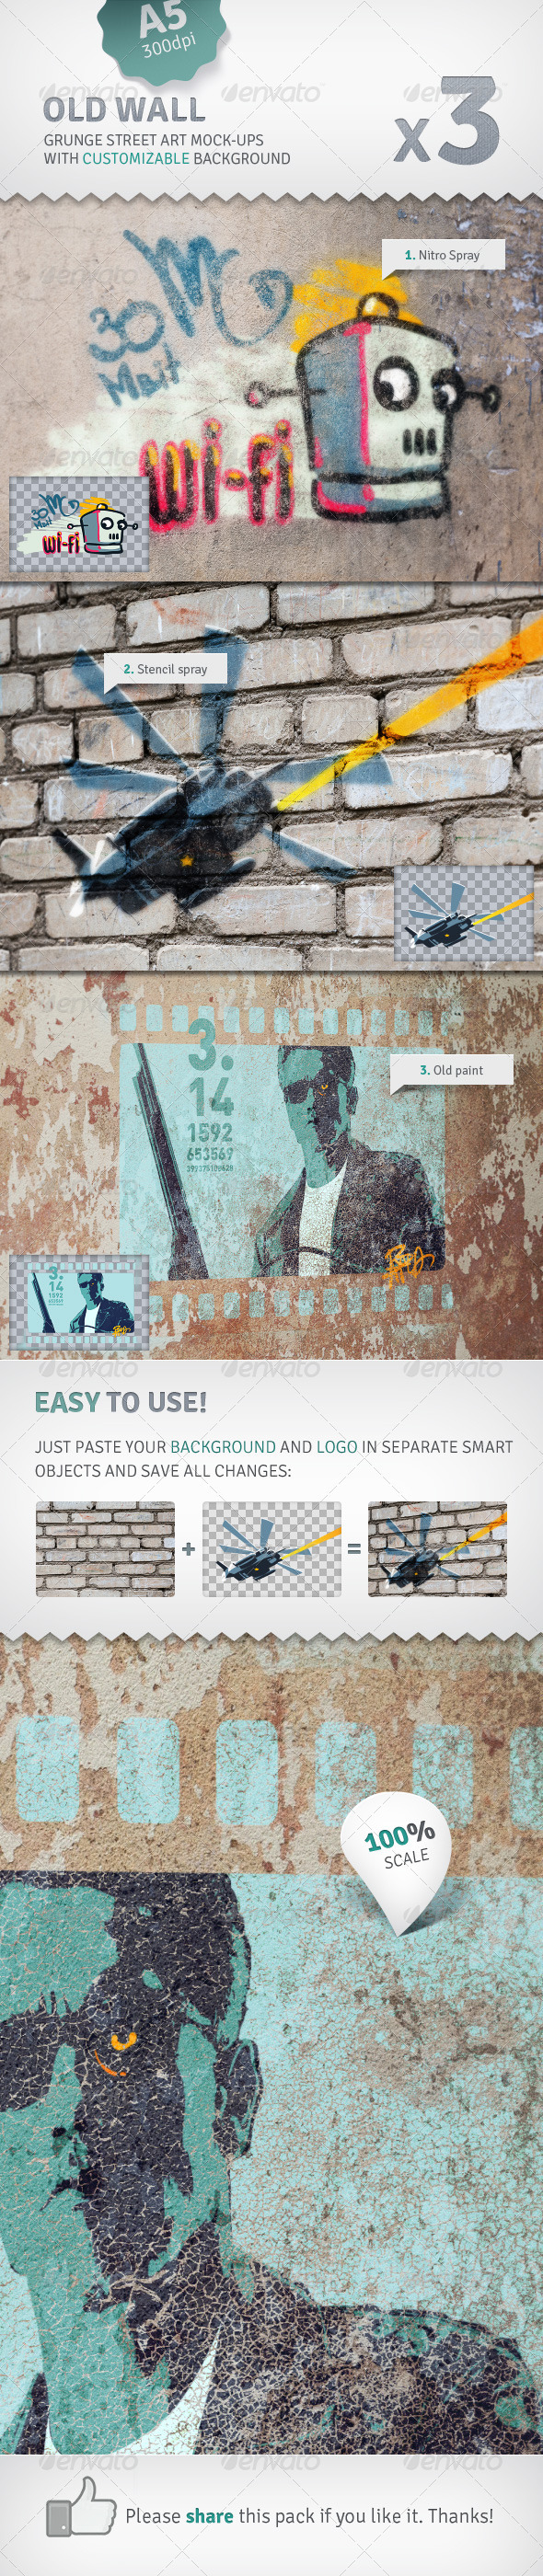 GraphicRiver Wall 3 Graffiti Street Art Mockups 2529449